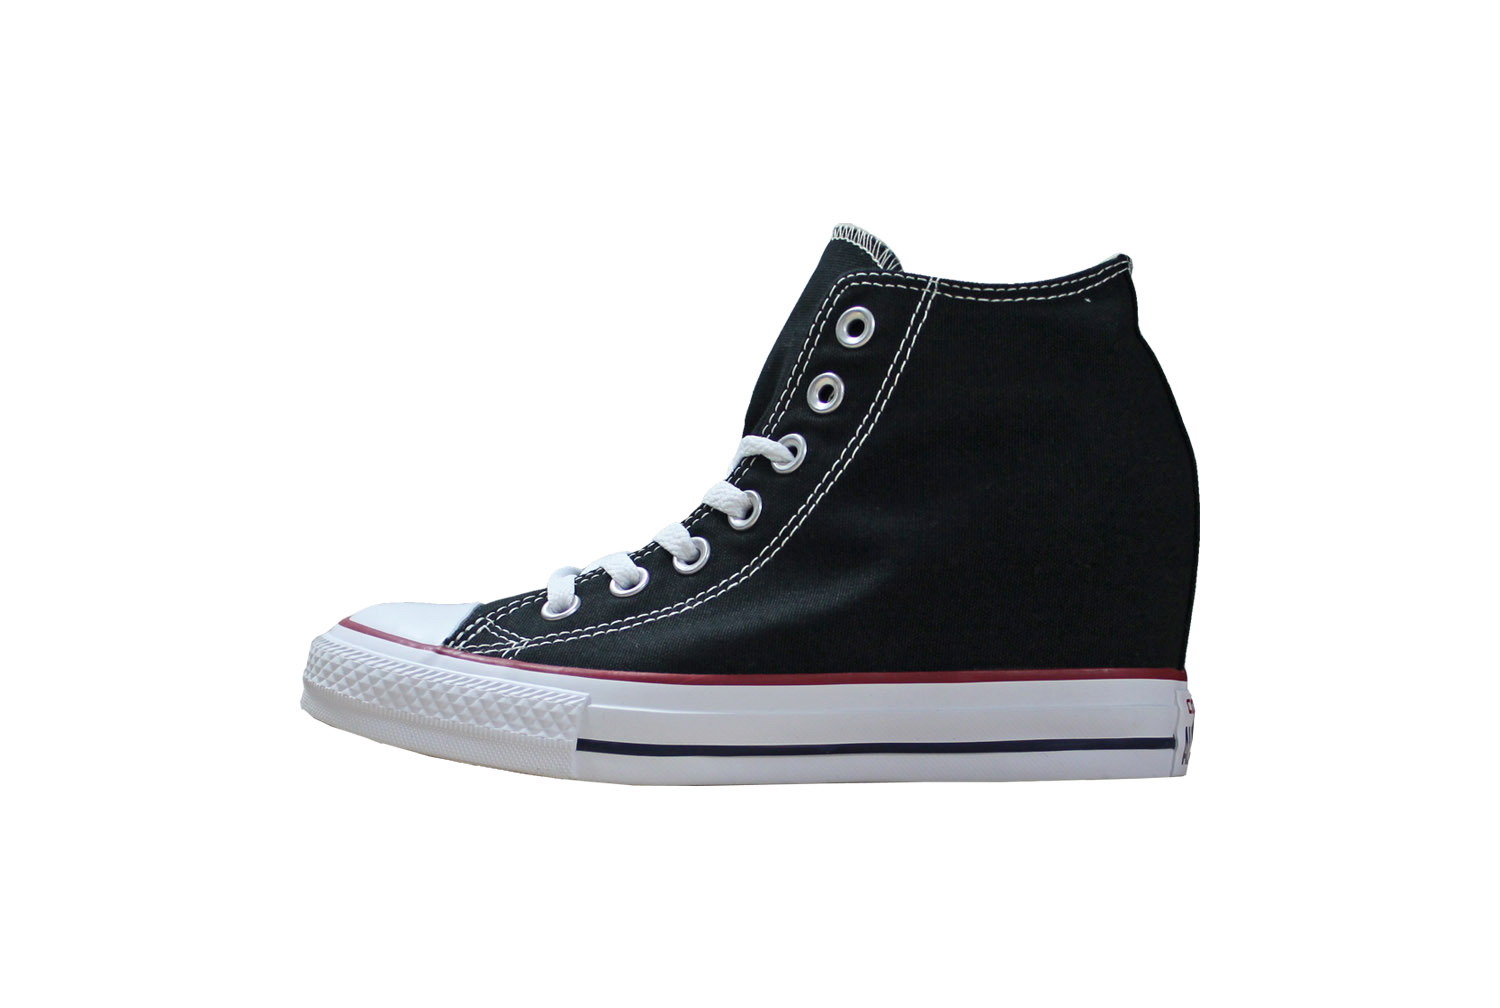 2converse mid lux